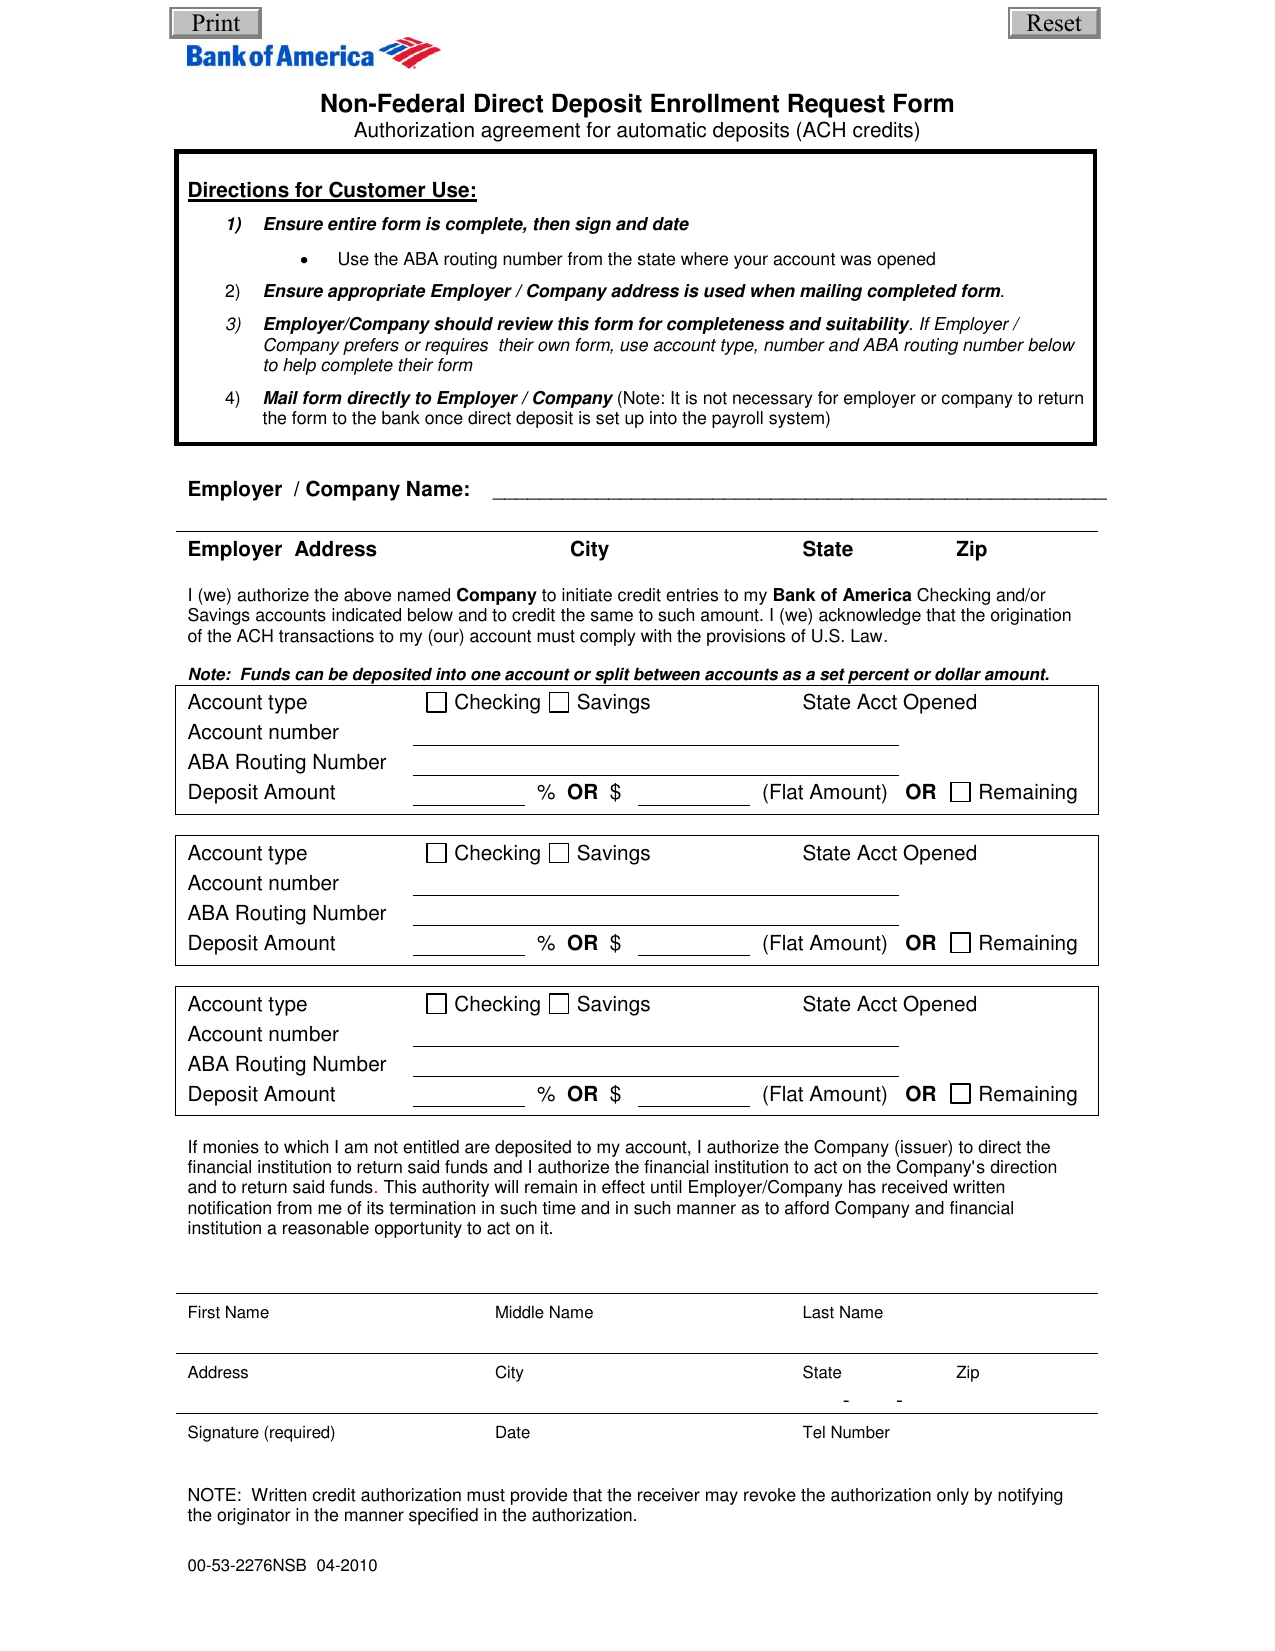 suntrust direct deposit form direct deposit setup form - Onwe.bioinnovate.co